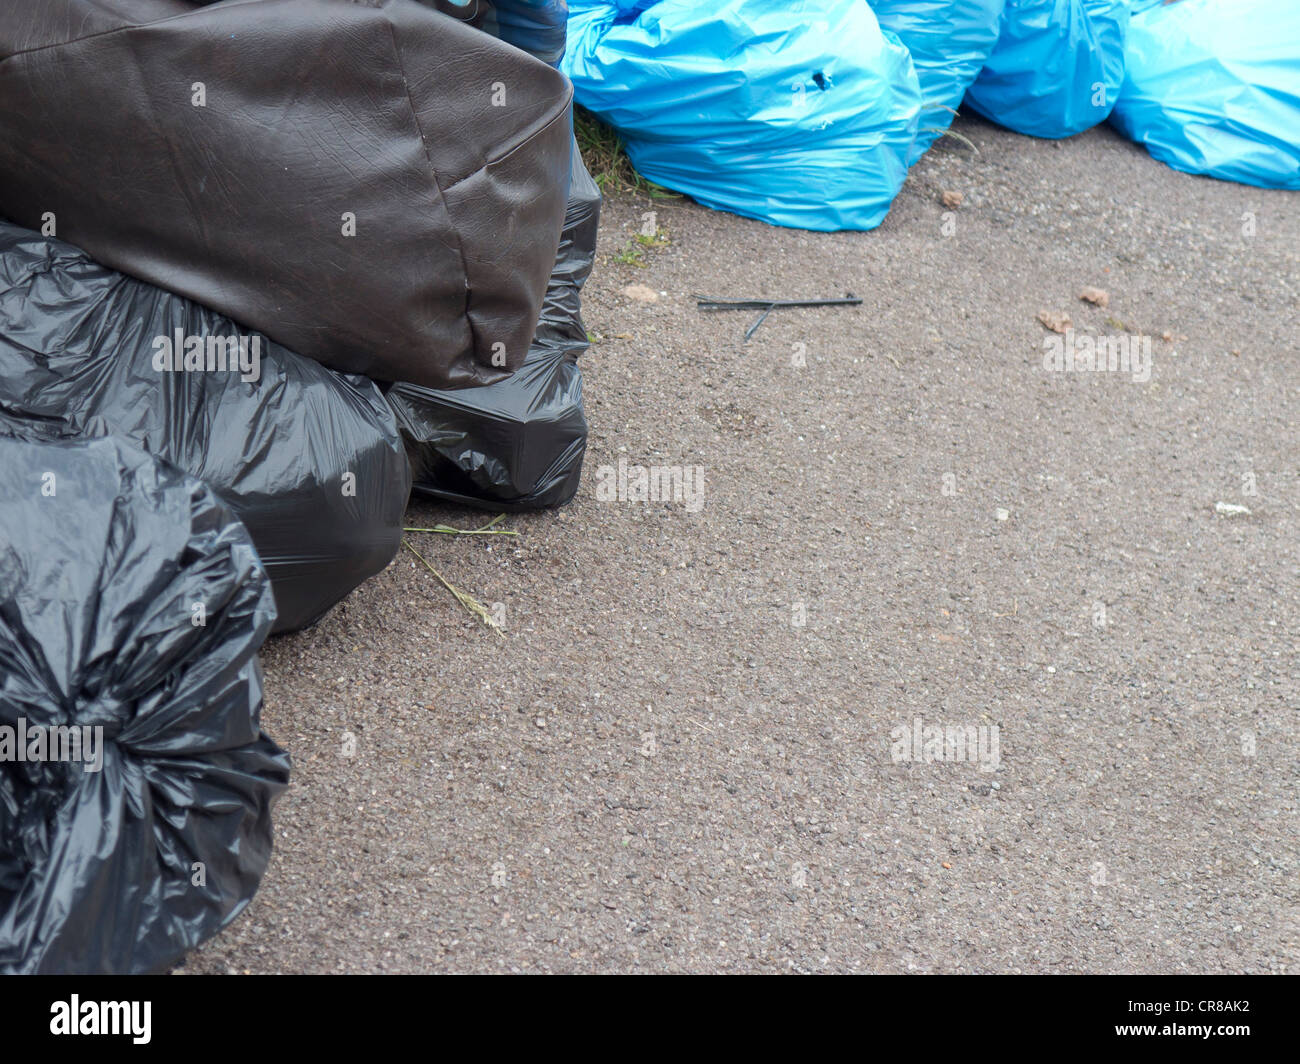 Rubbish bags await collection on the pavement. - Stock Image